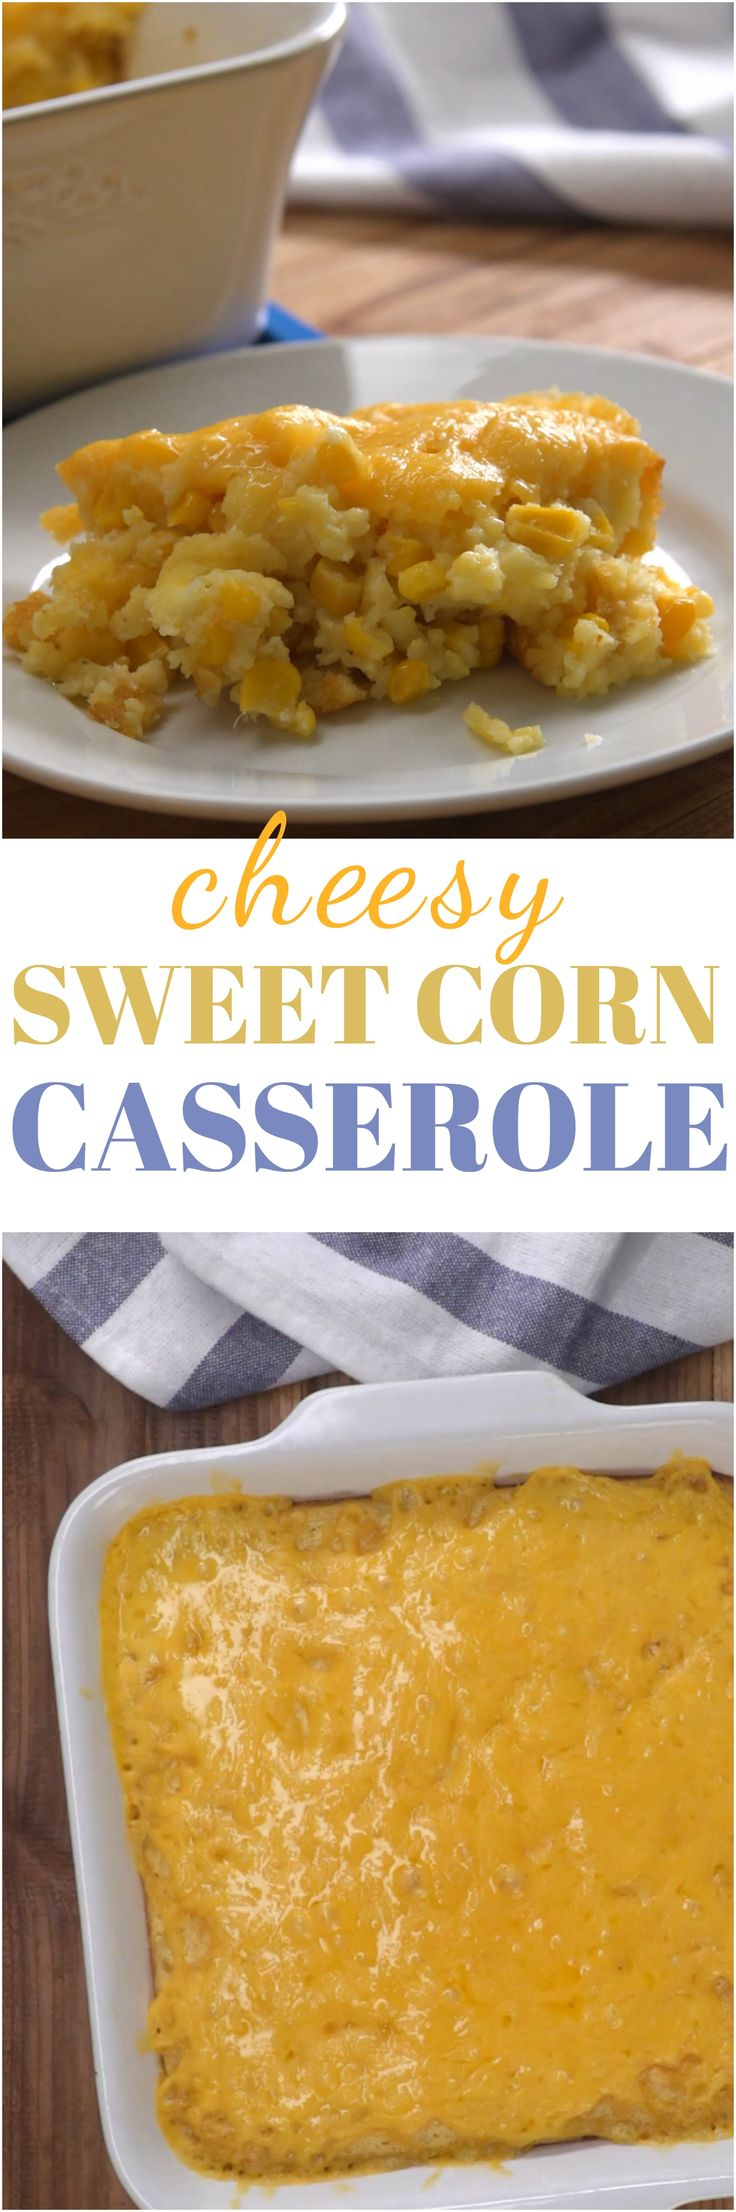 Cheesy sweet corn casserole is a beloved and convenient make-ahead side dish that'll have everyone cutting the buffet line at your next family gathering.